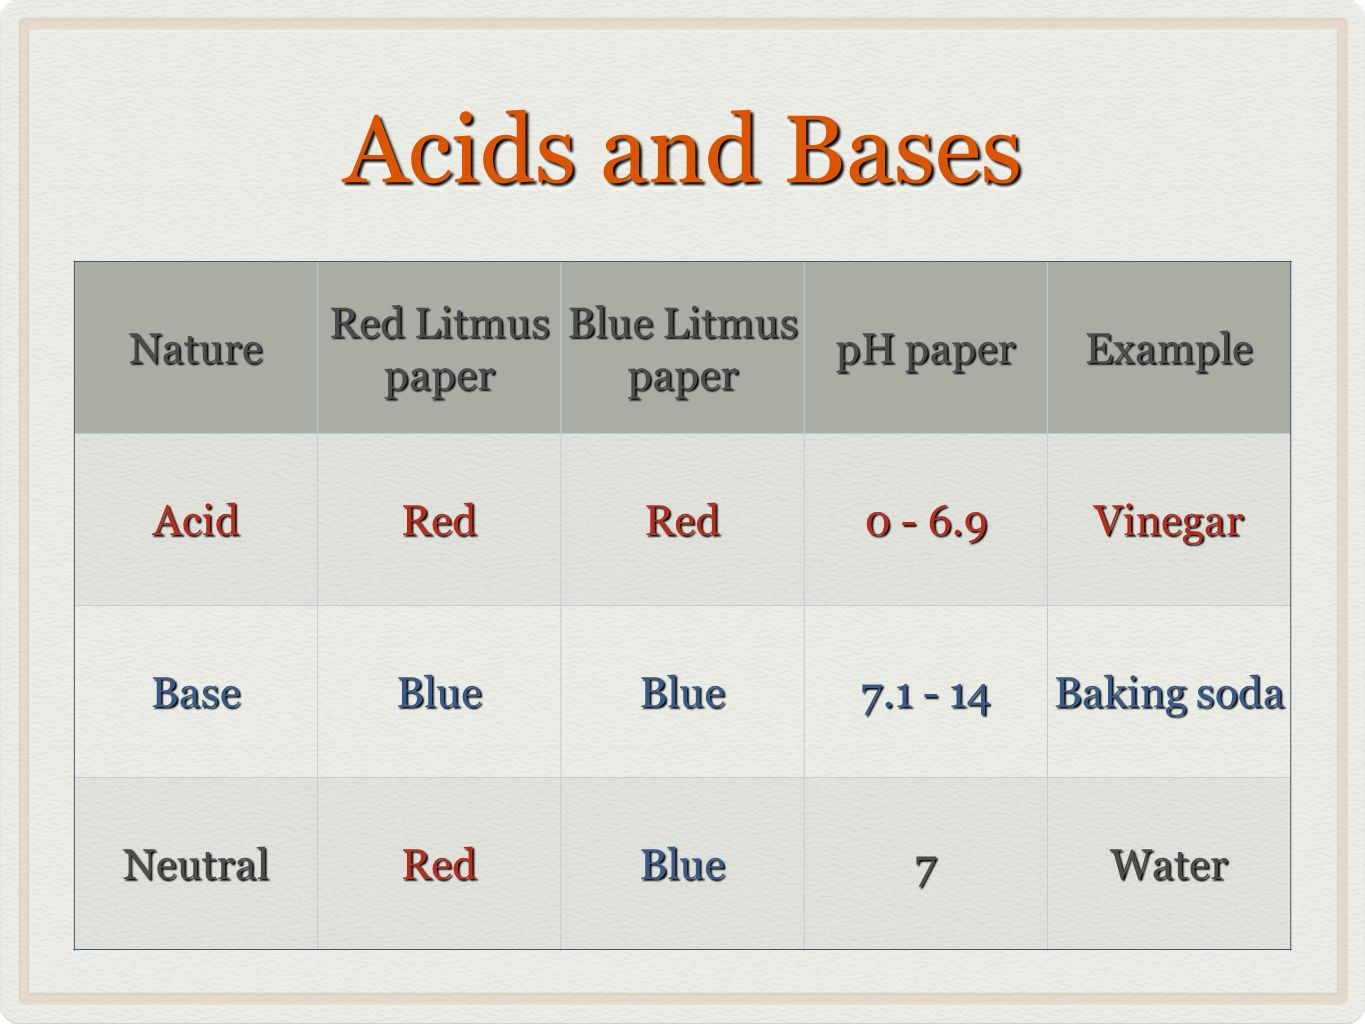 Acids and Bases Nature Red Litmus paper Blue Litmus paper pH paper Example AcidRedRed 0 - 6.9 Vinegar BaseBlueBlue 7.1 - 14 Baking soda NeutralRedBlue7Water